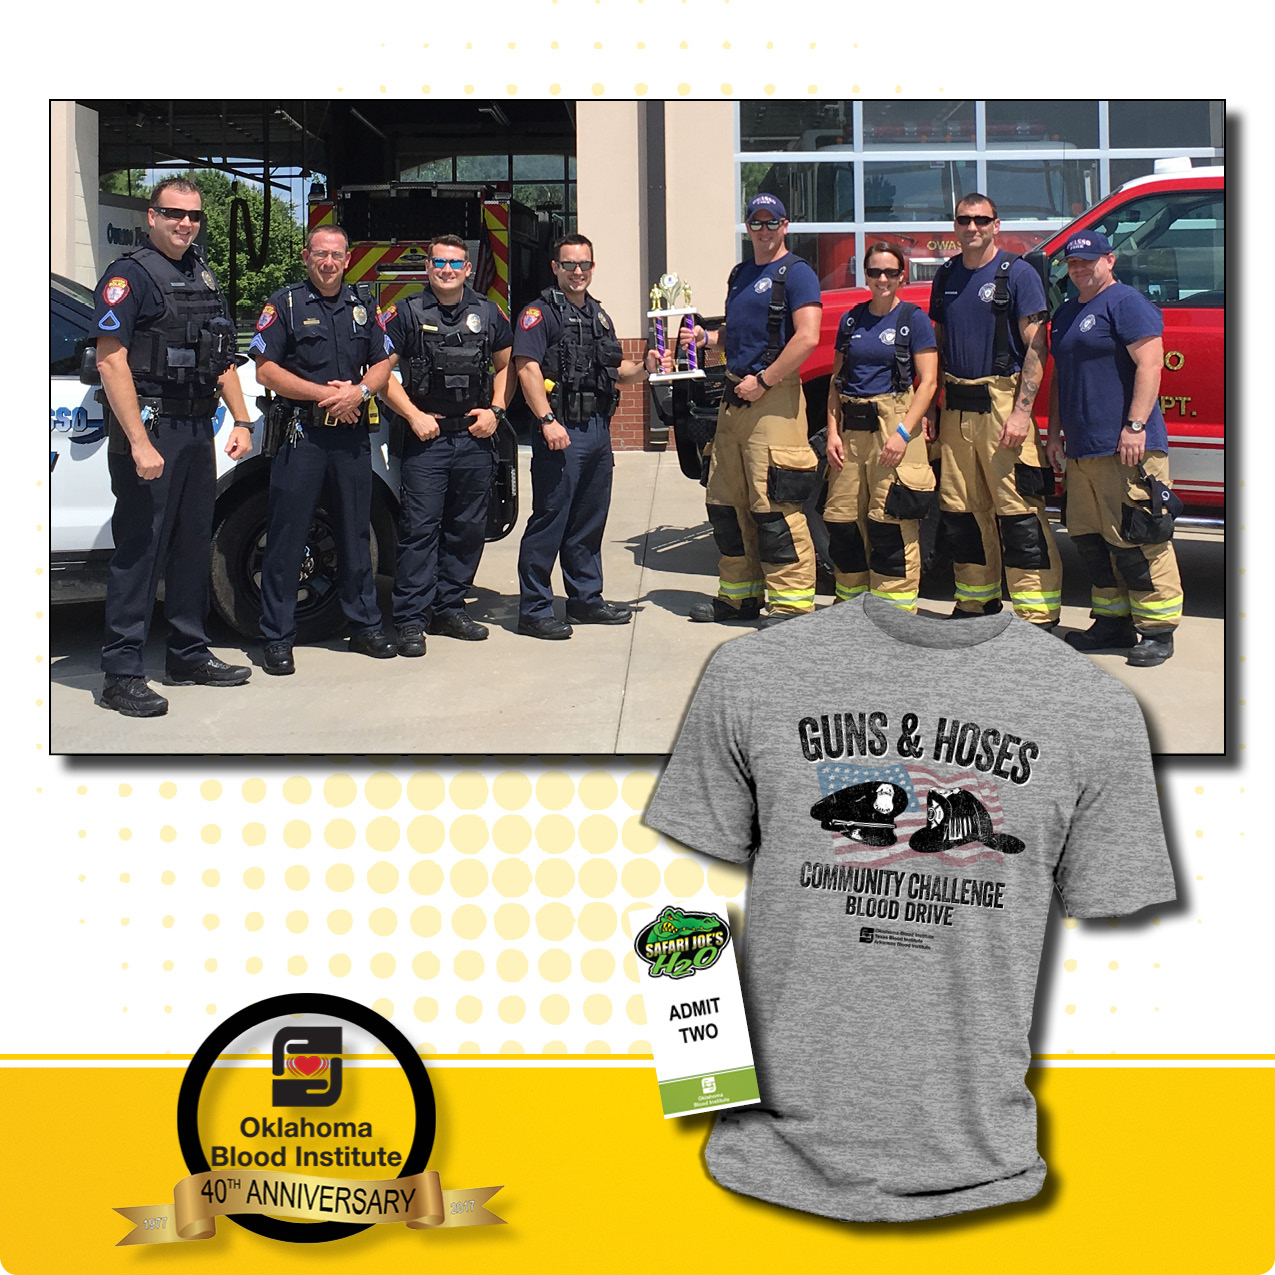 Guns and Hoses Community Challenge Blood Drive August 1st